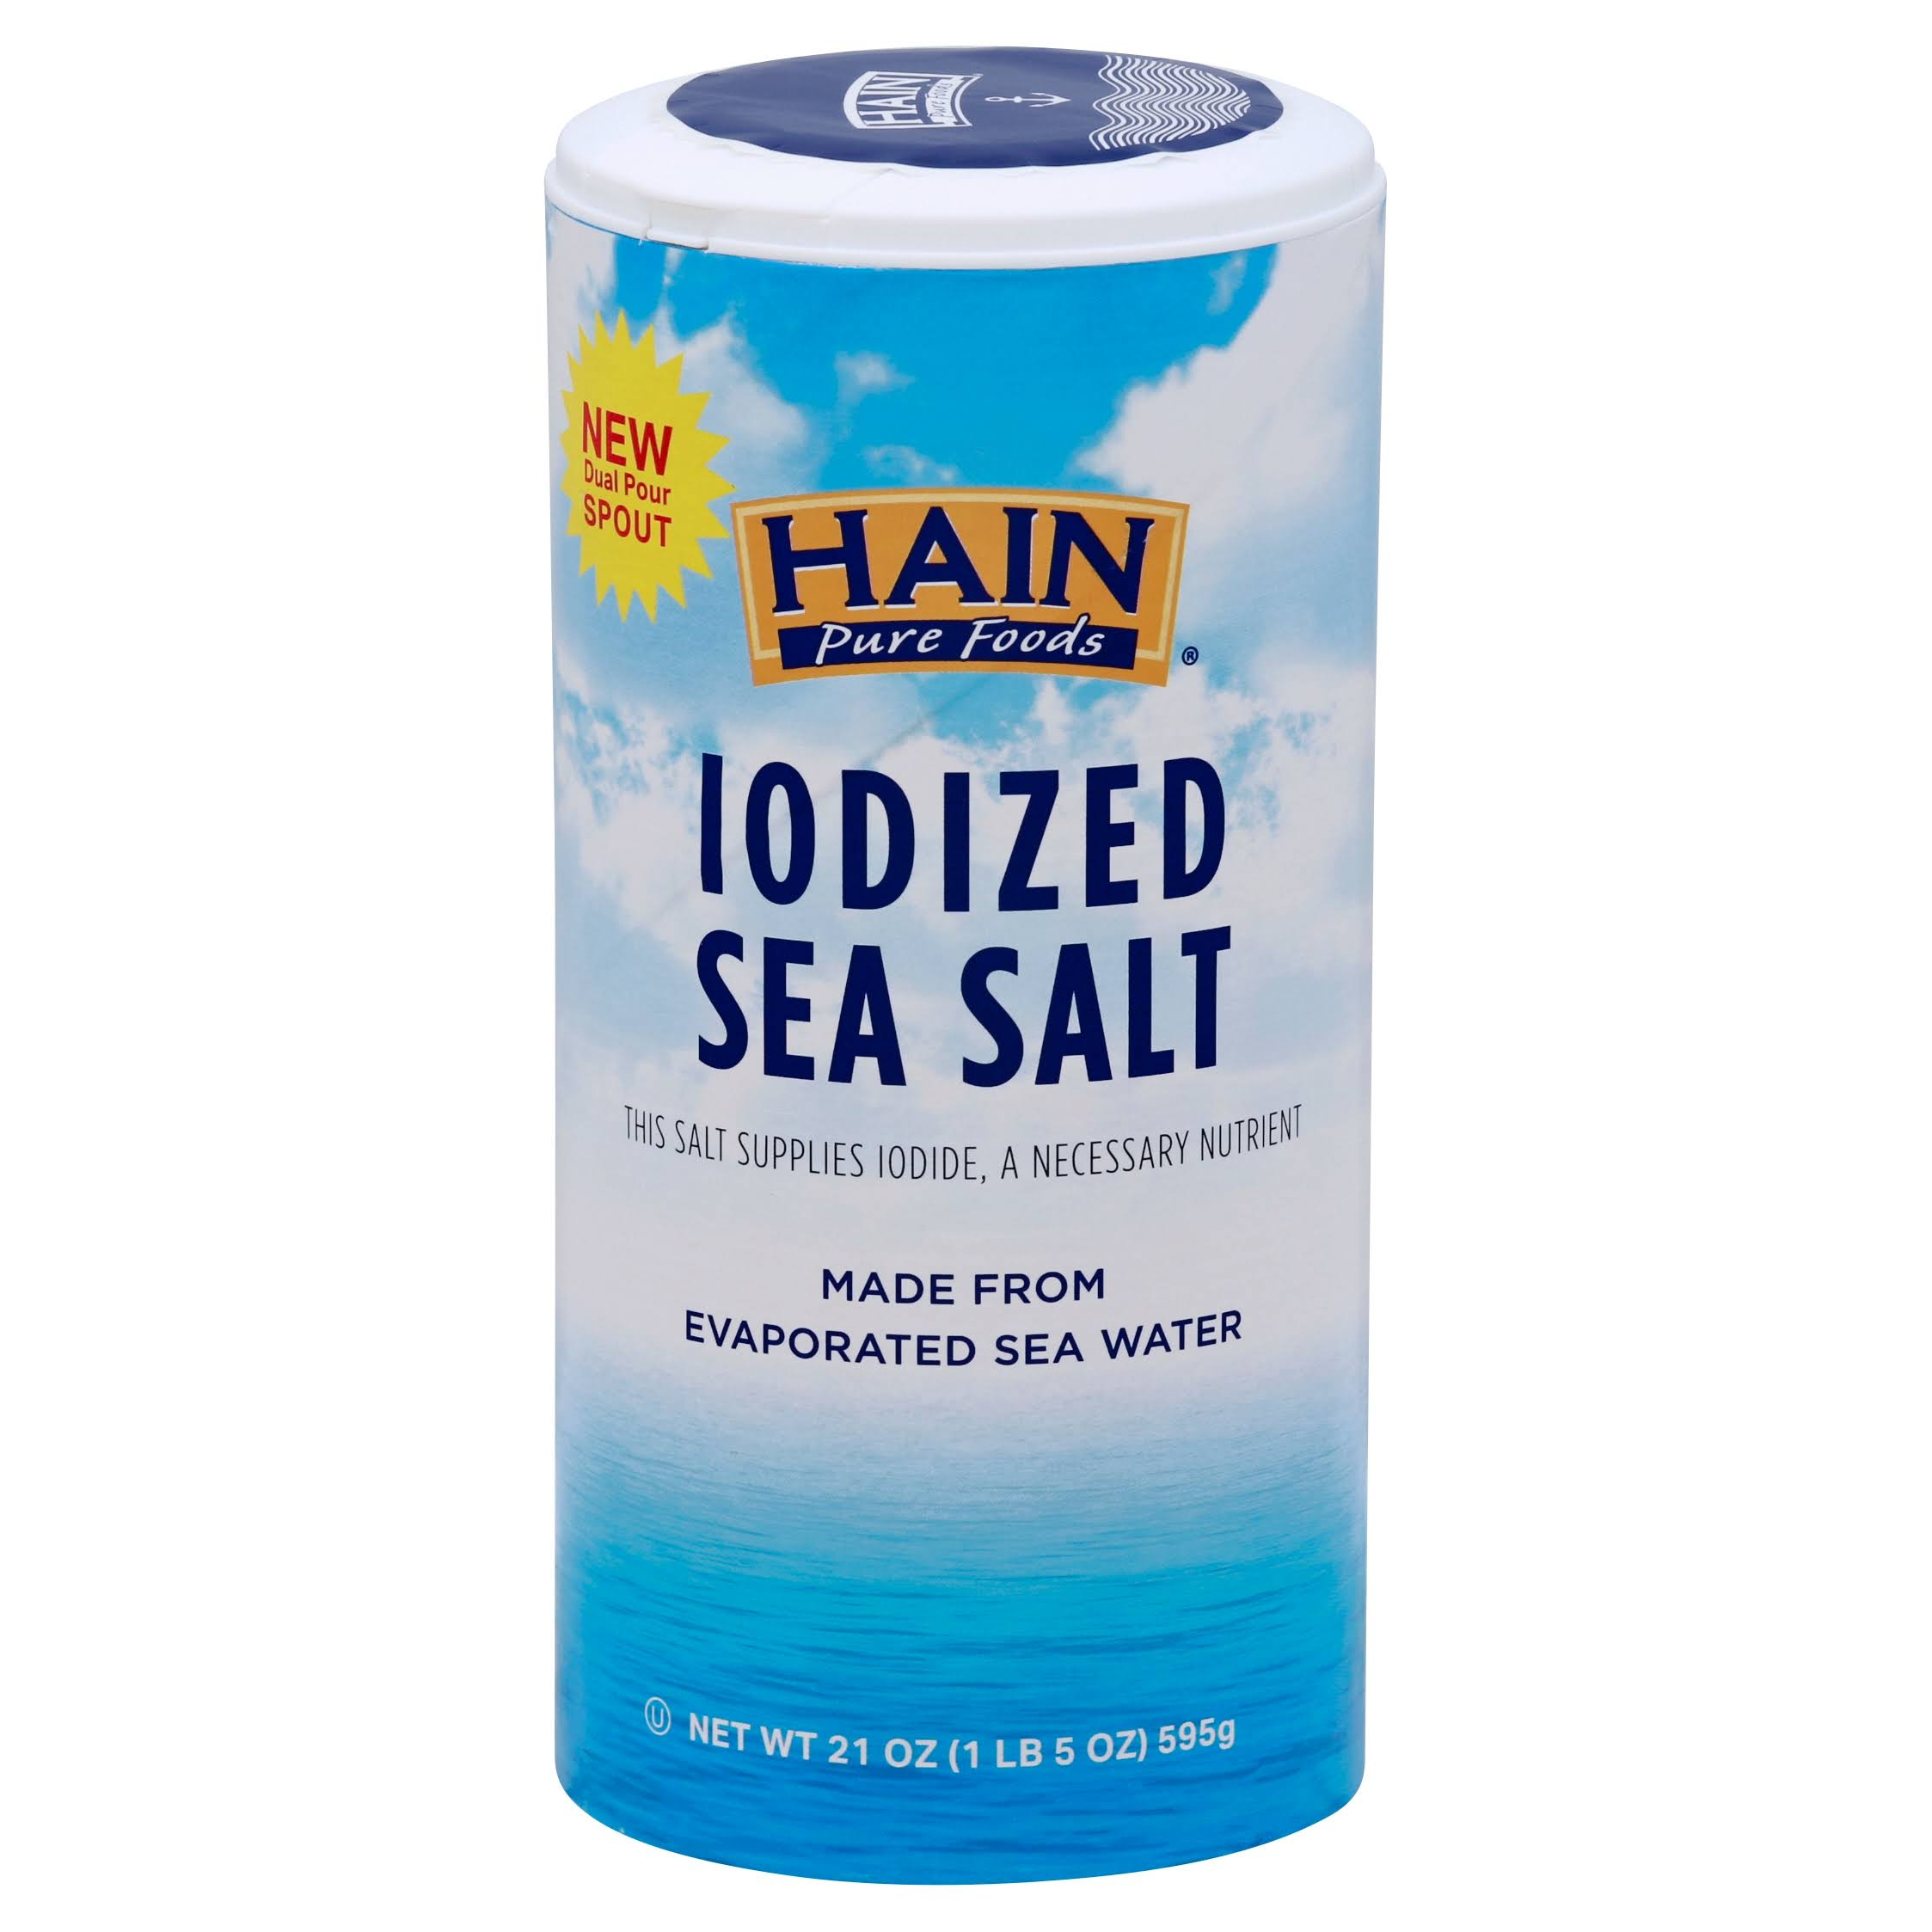 Hain Pure Foods Iodized Sea Salt - 21 oz canister